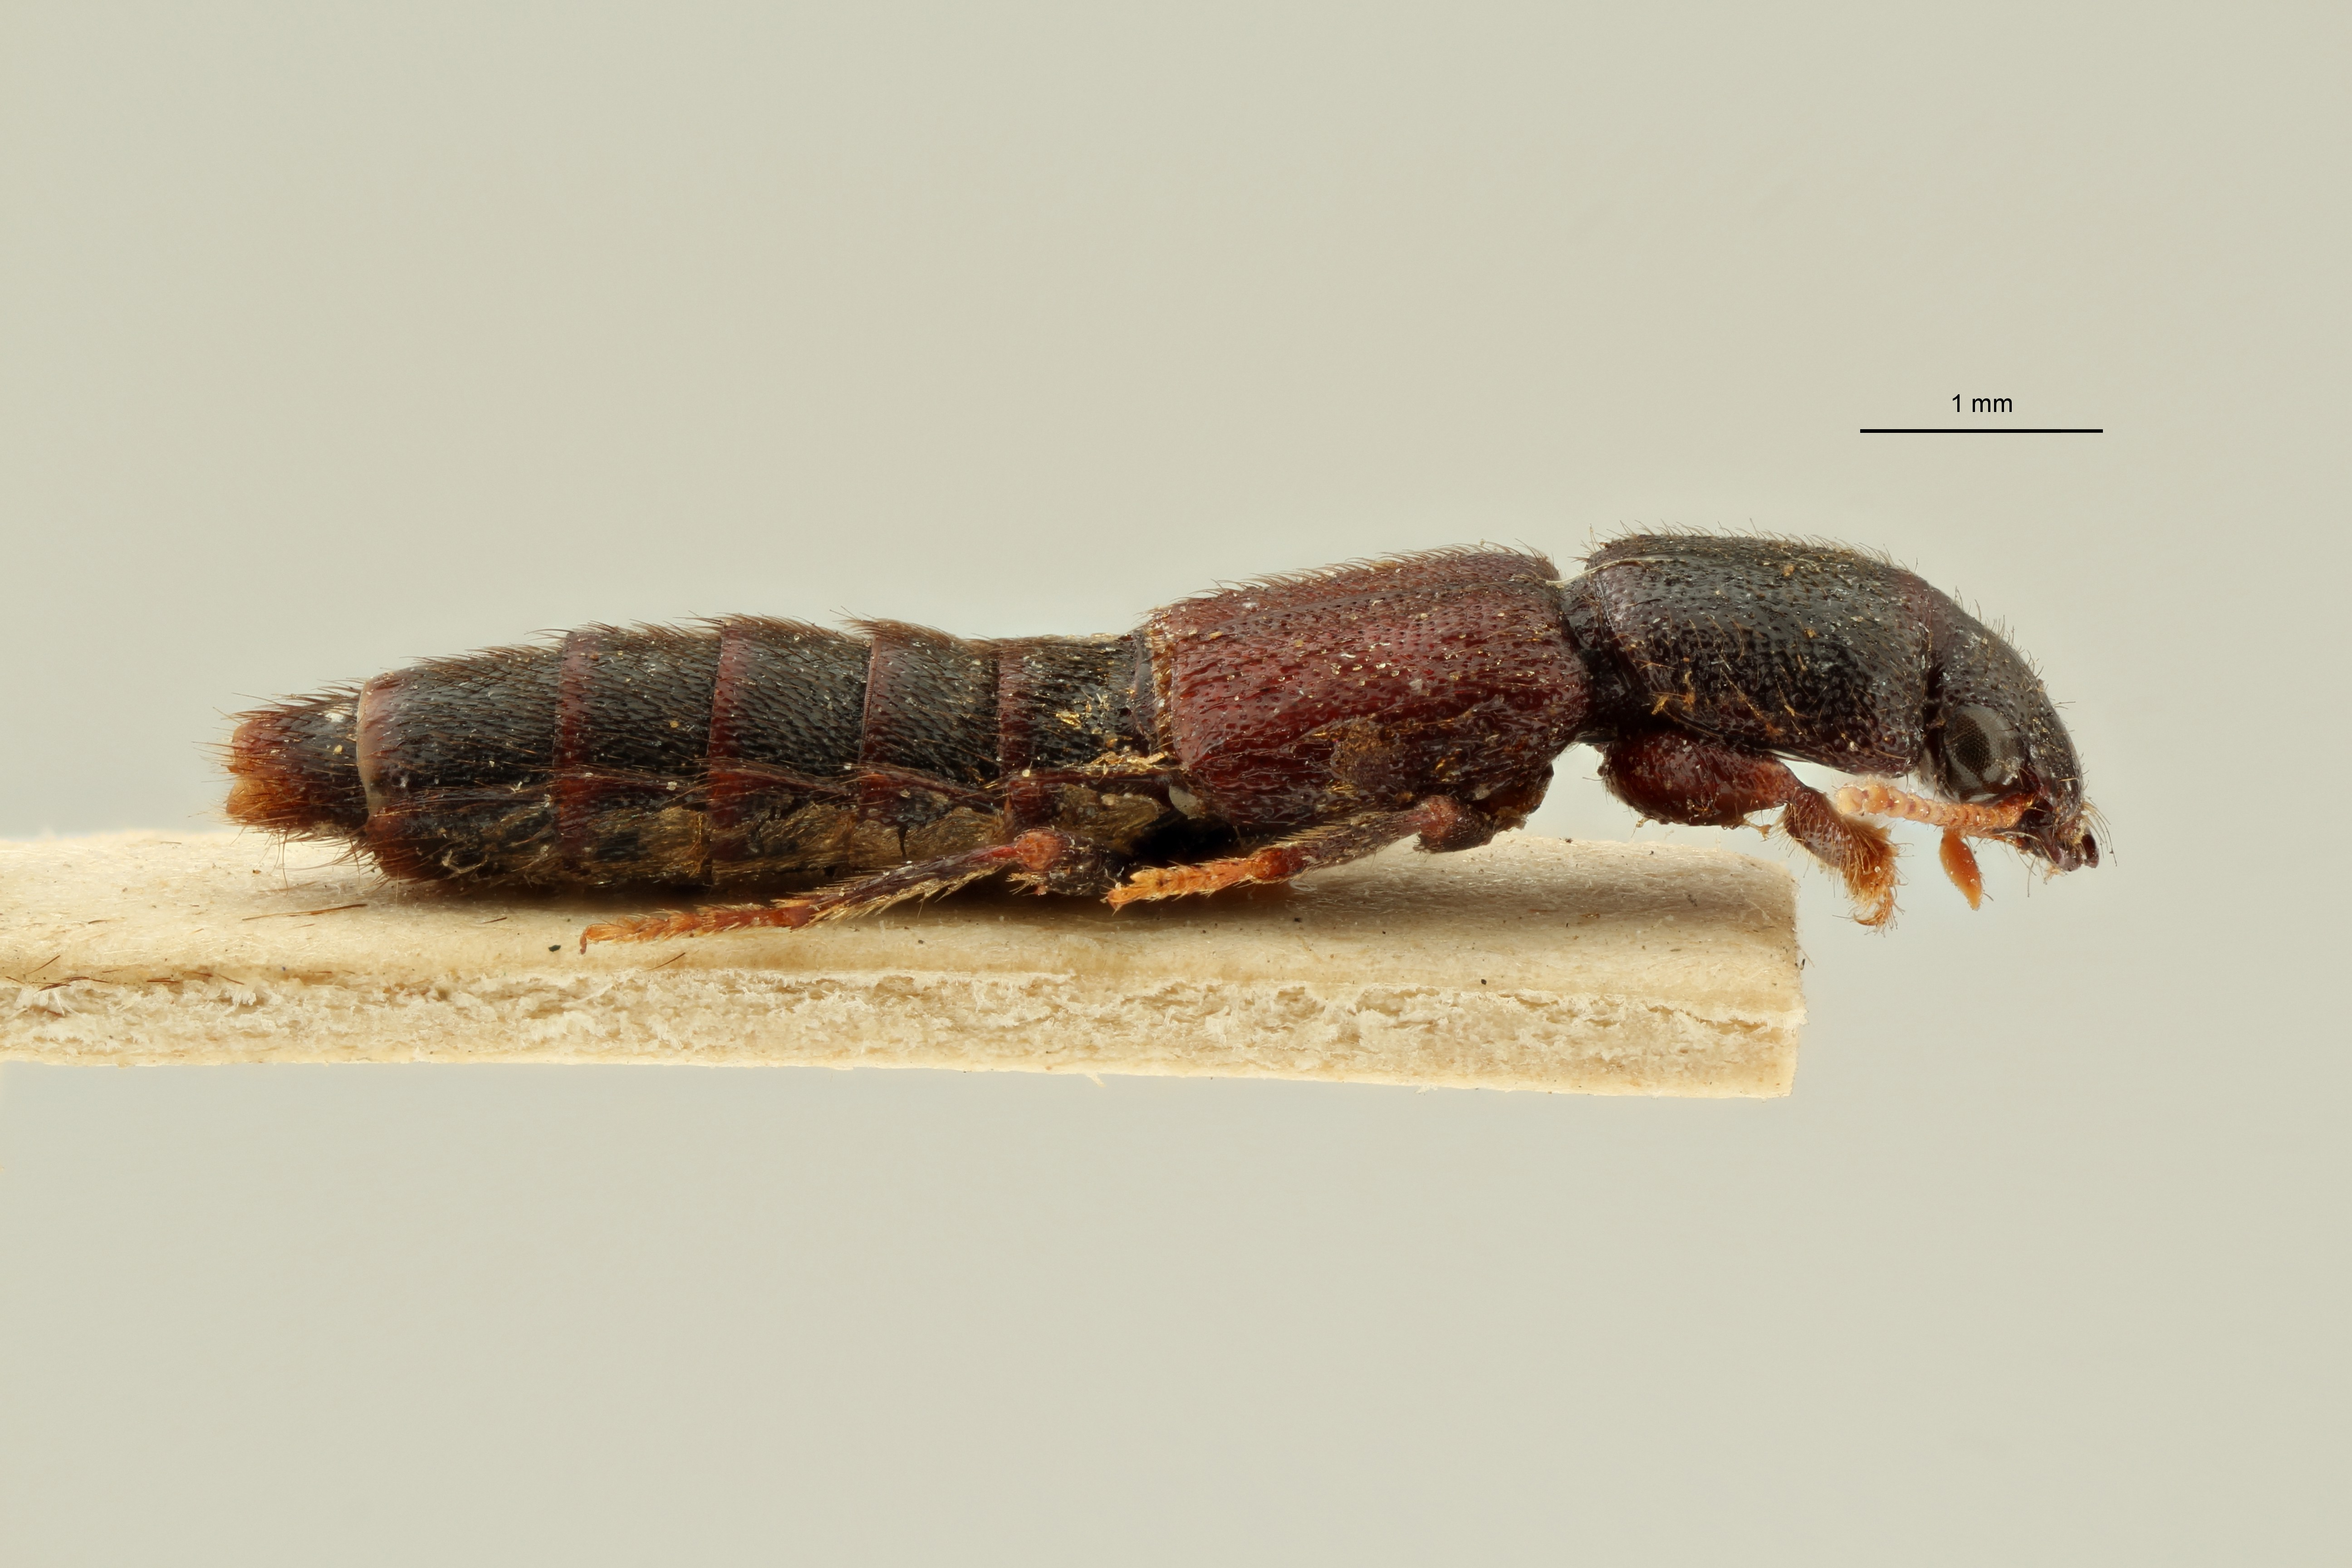 Pinophilus curticornis t L ZS PMax Scaled.jpeg